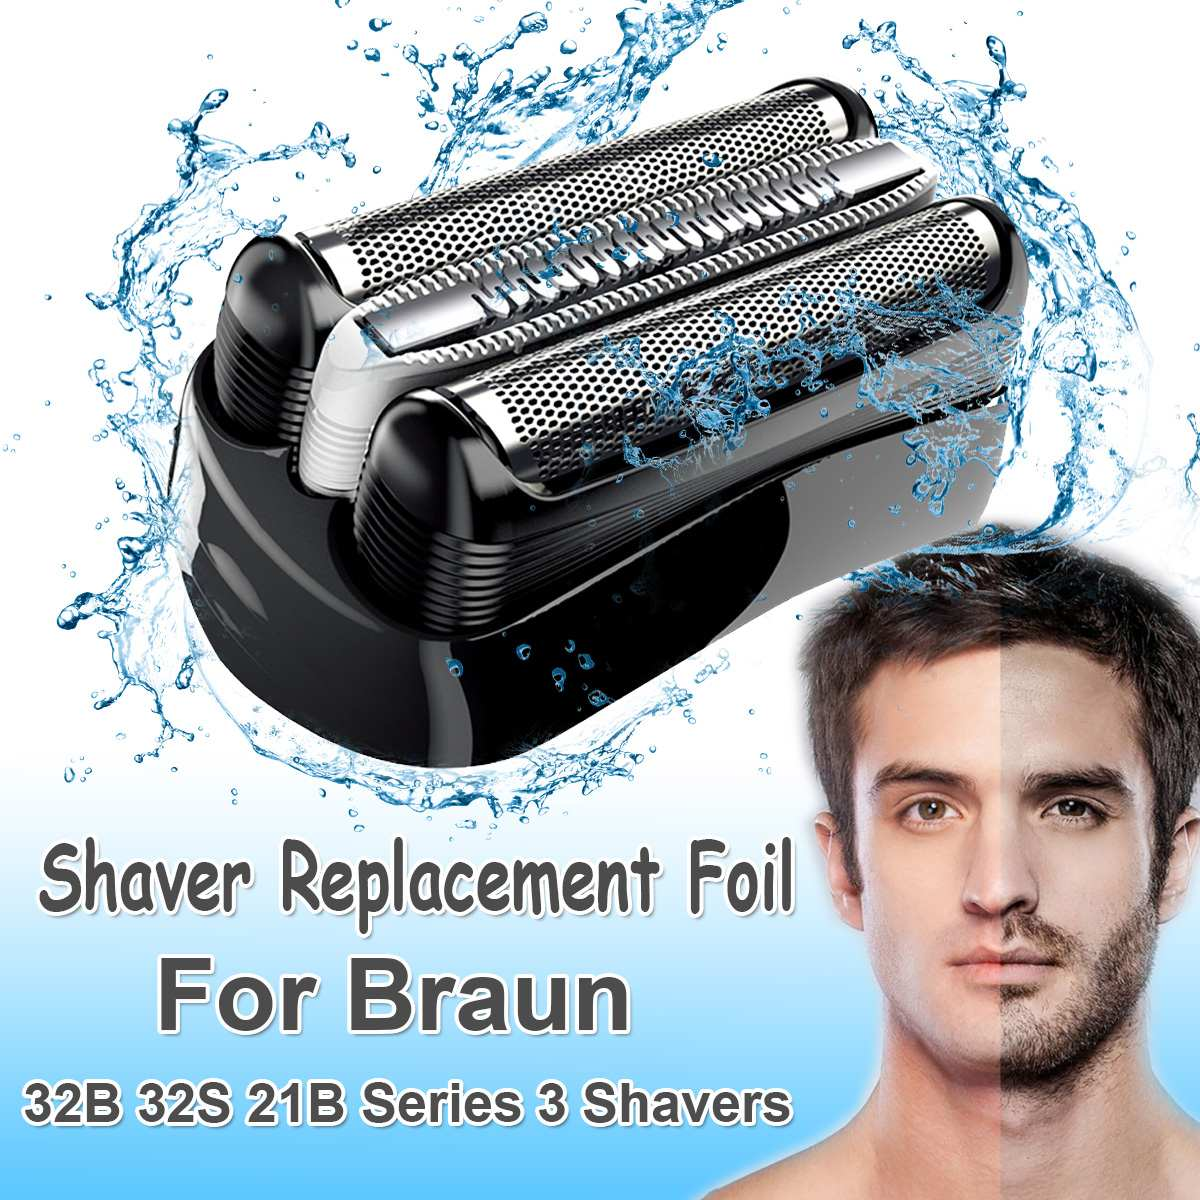 Replacement Shaver Foil Head for Braun 32B 32S 21B for Cruzer6 Series 3 301S 310S 320S 360S 3000S 3010S 3020S 350CC Head Blade